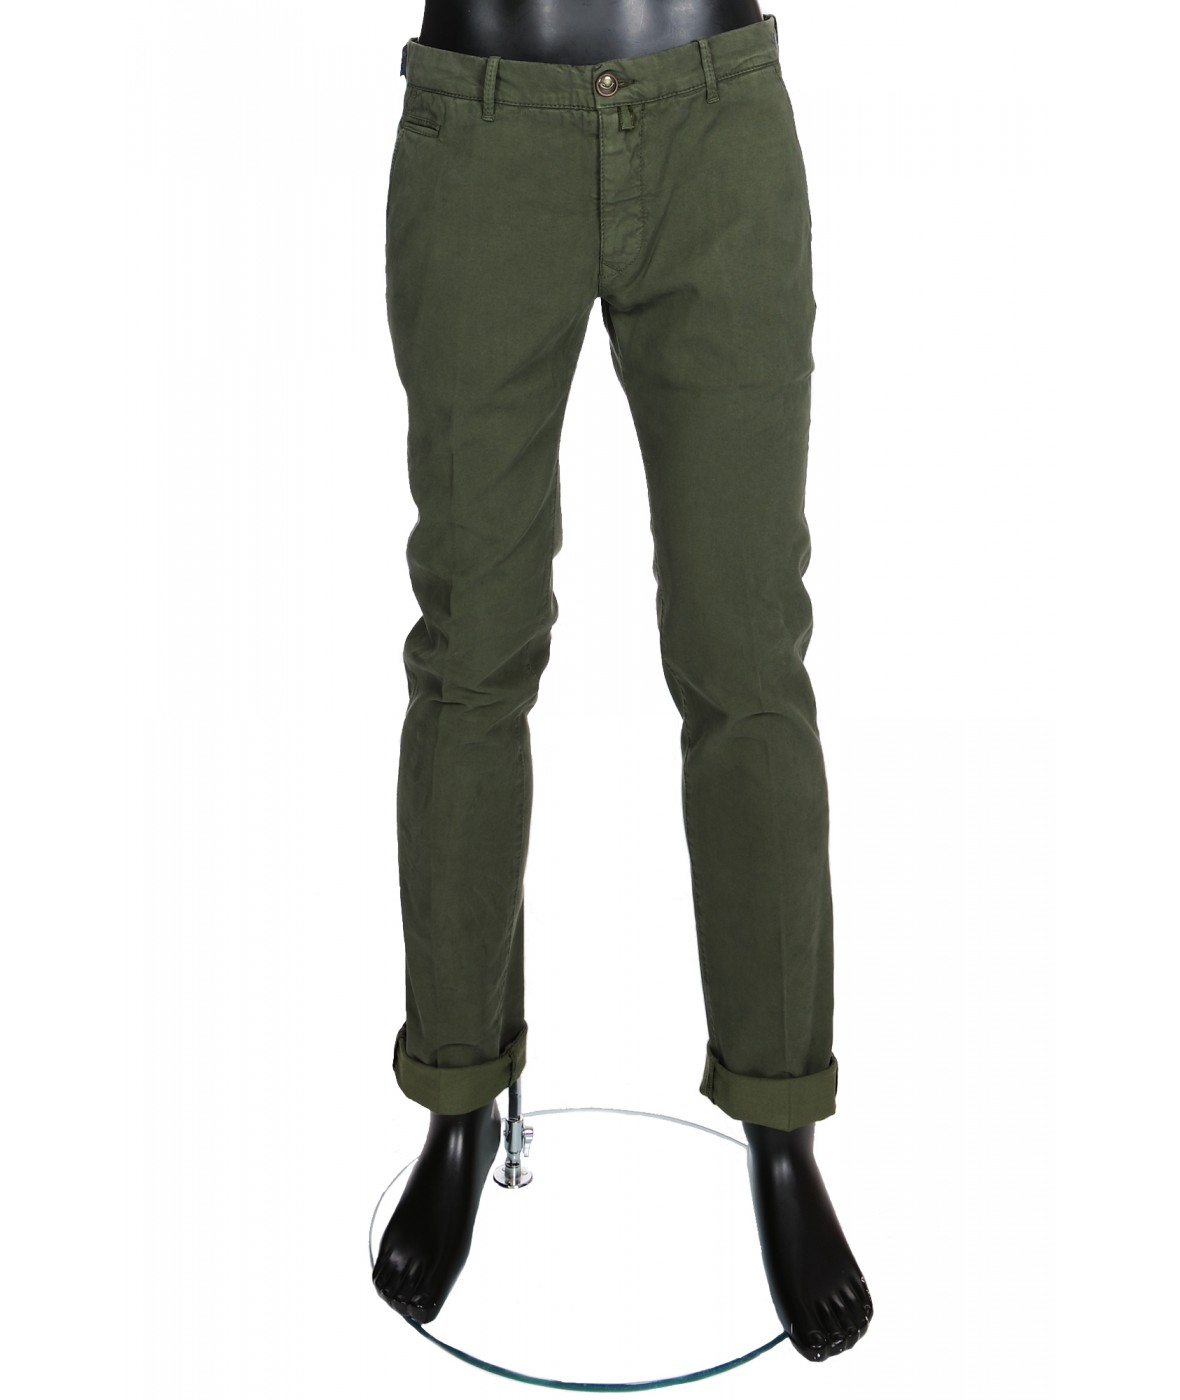 Jacob Cohen Bobby Comfort Army Green (31483)